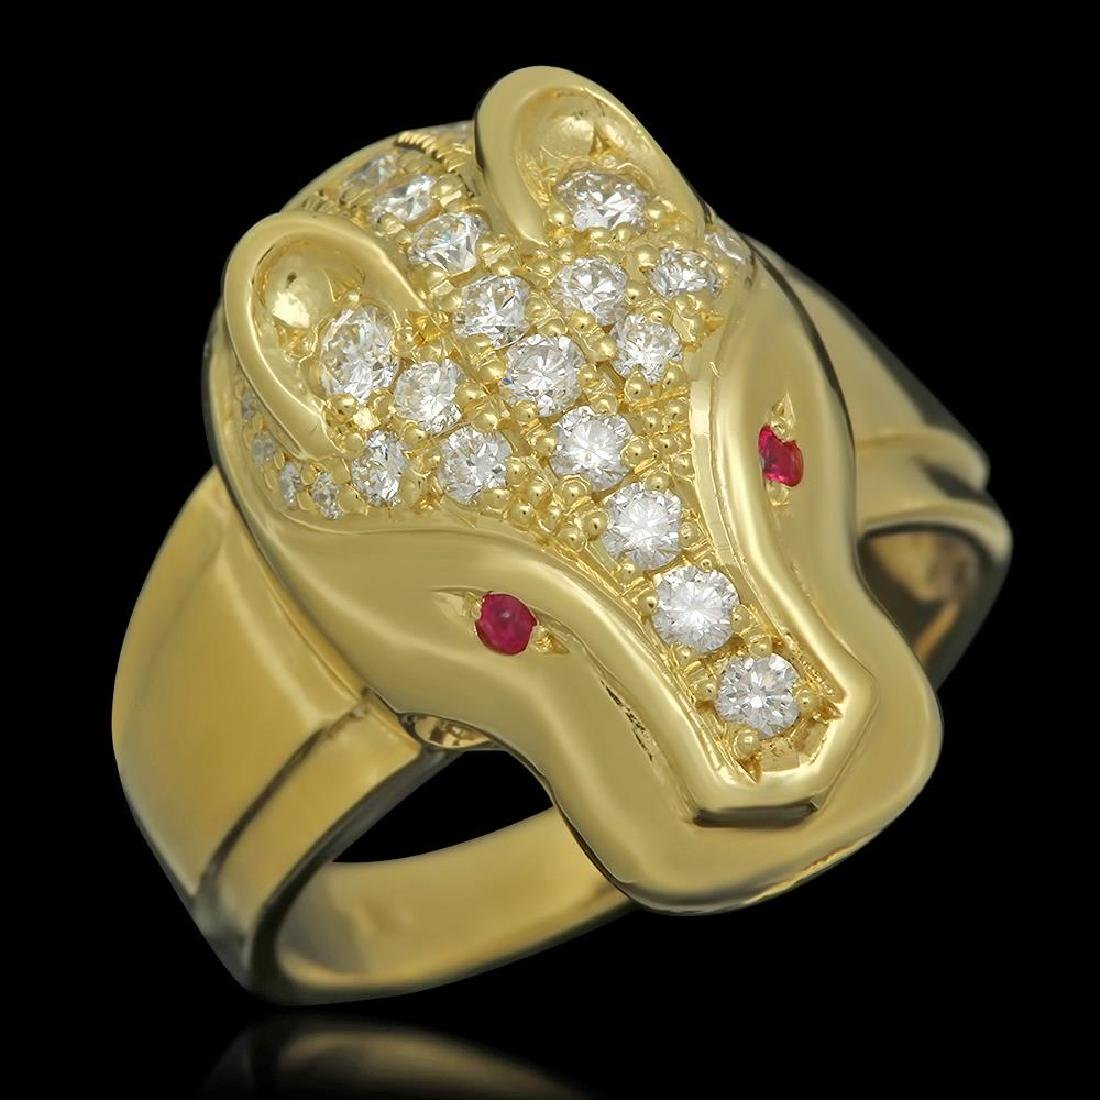 18K Gold 1.08 Diamond Ruby Panther Ring